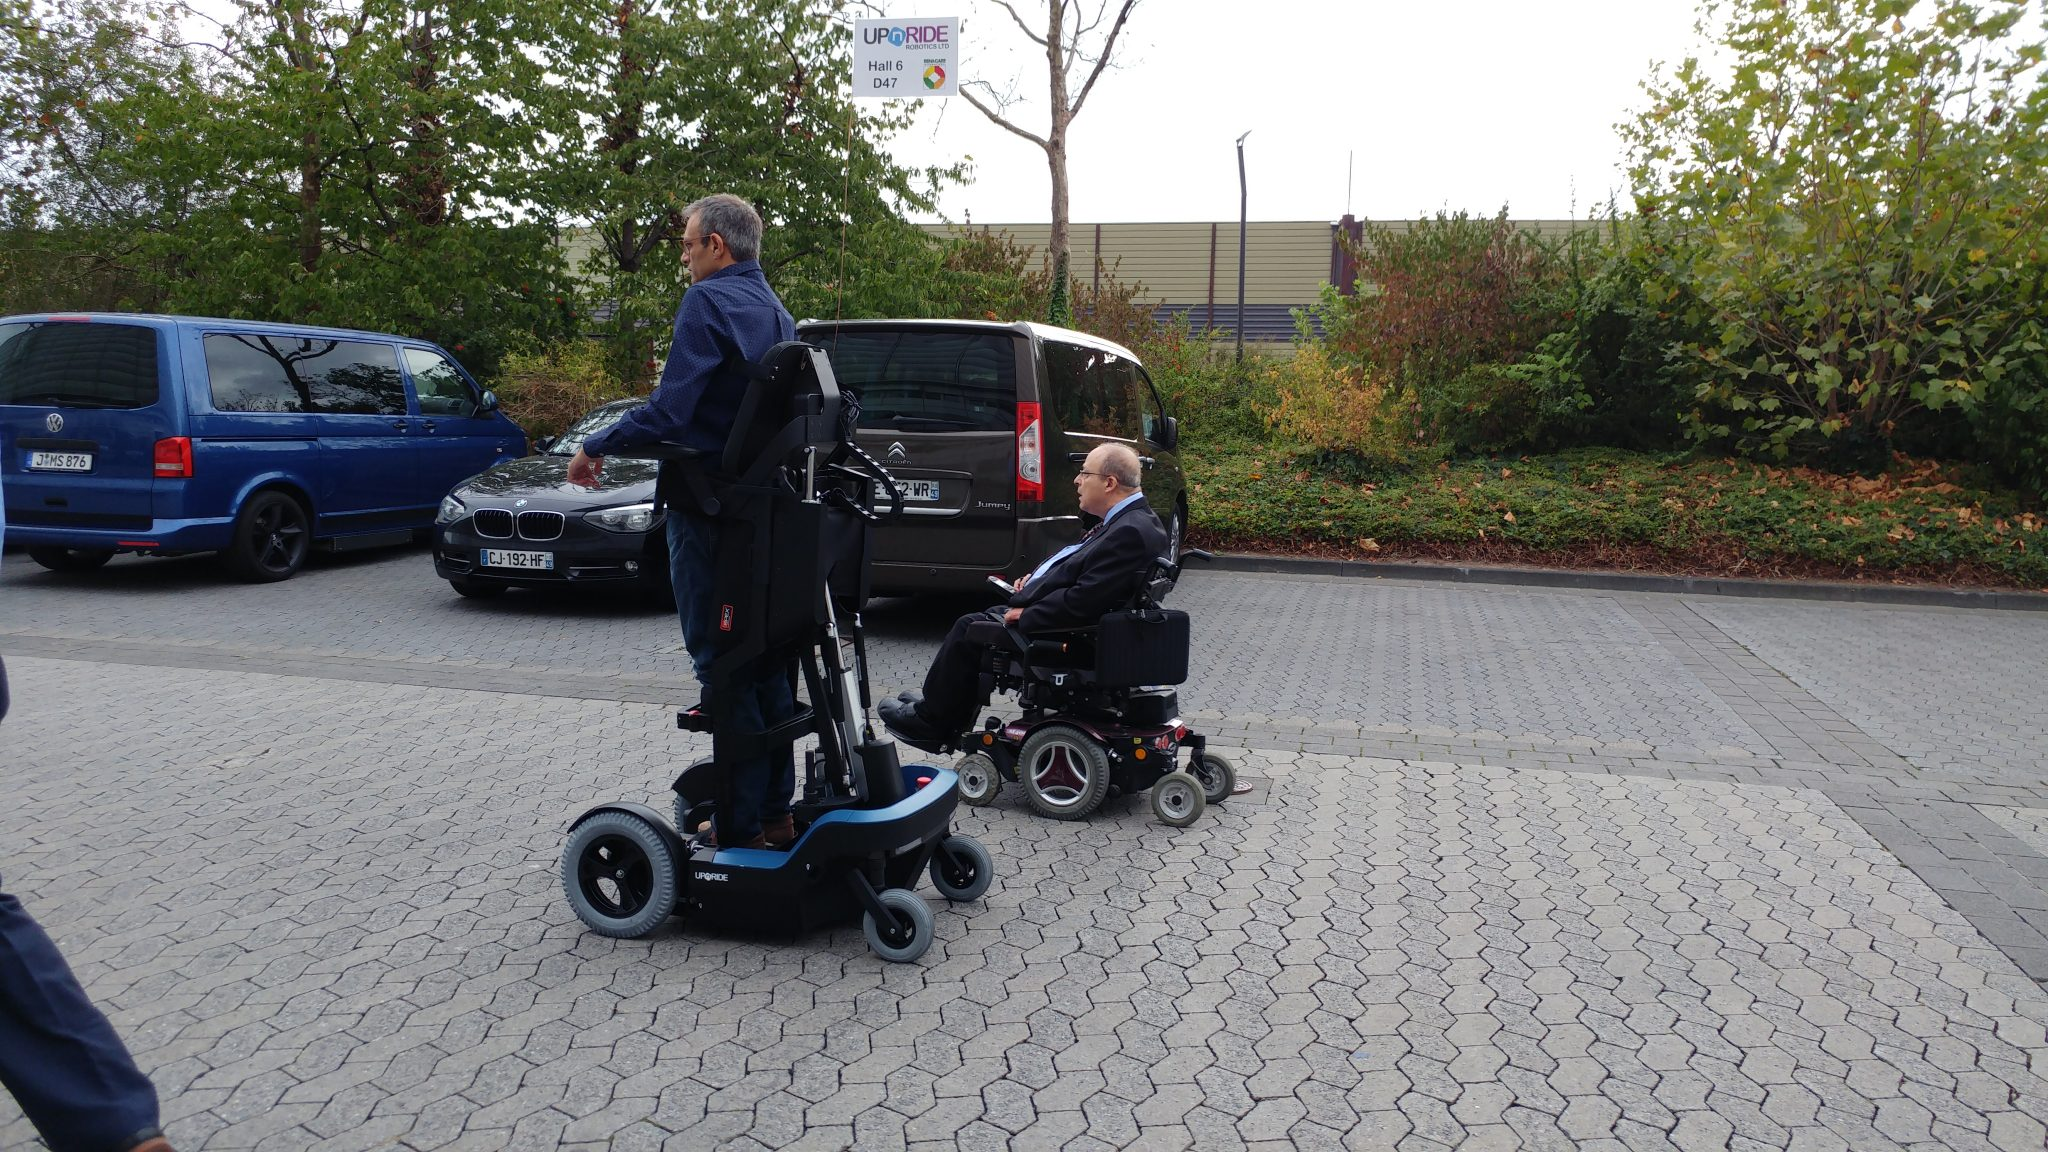 UpnRide Israeli startup for upright wheelchair testing the product on urban terrain